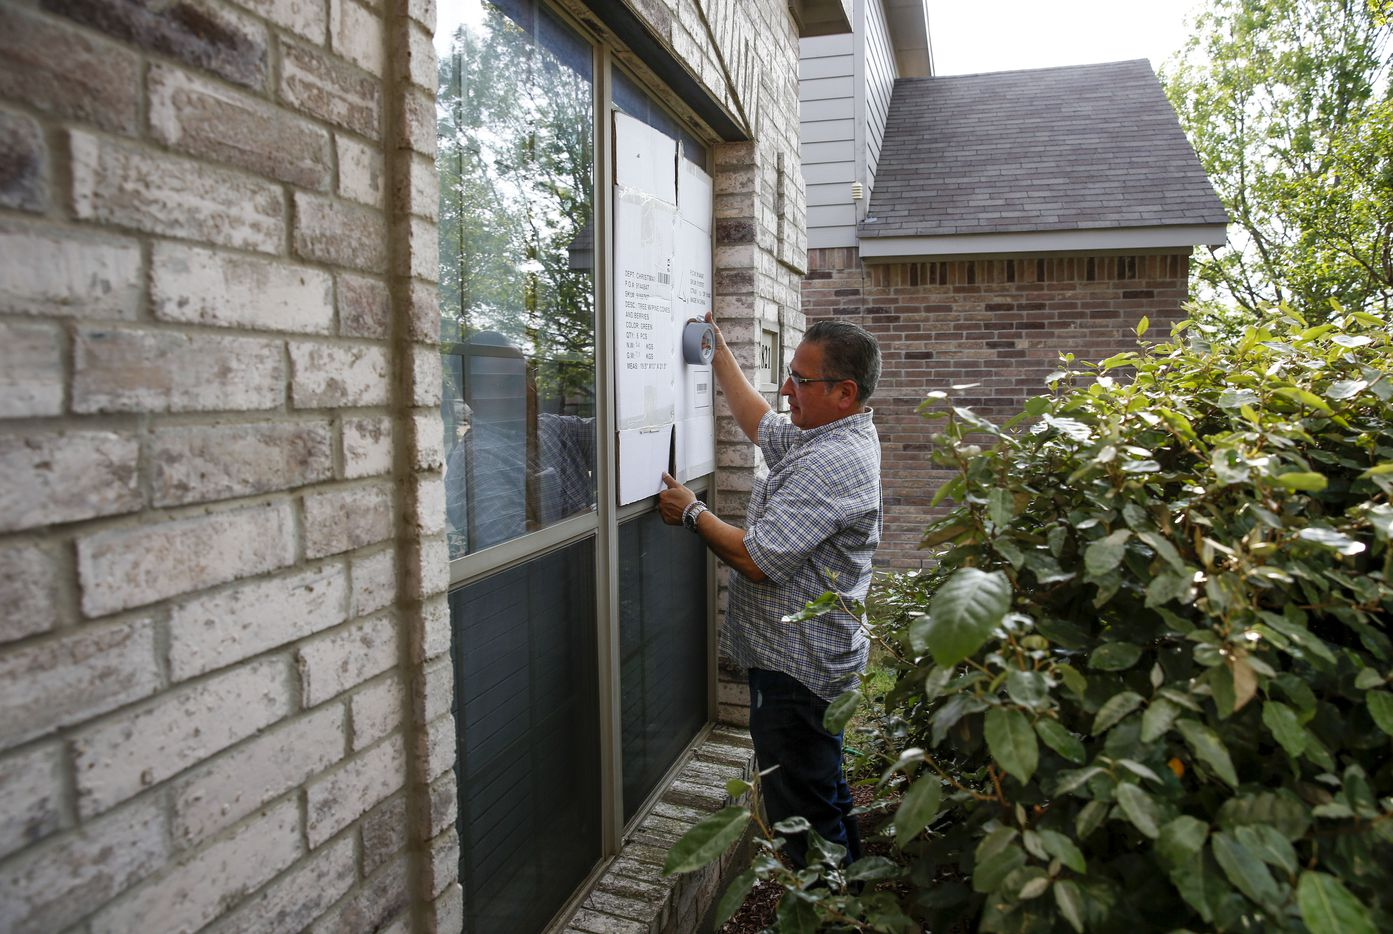 Michael Ruiz of McKinney tapes boxes to the front windows of his house to protect them from hail damage as the threat of storms get closer on April 17, 2019 in McKinney, Texas (Brian Elledge/The Dallas Morning N